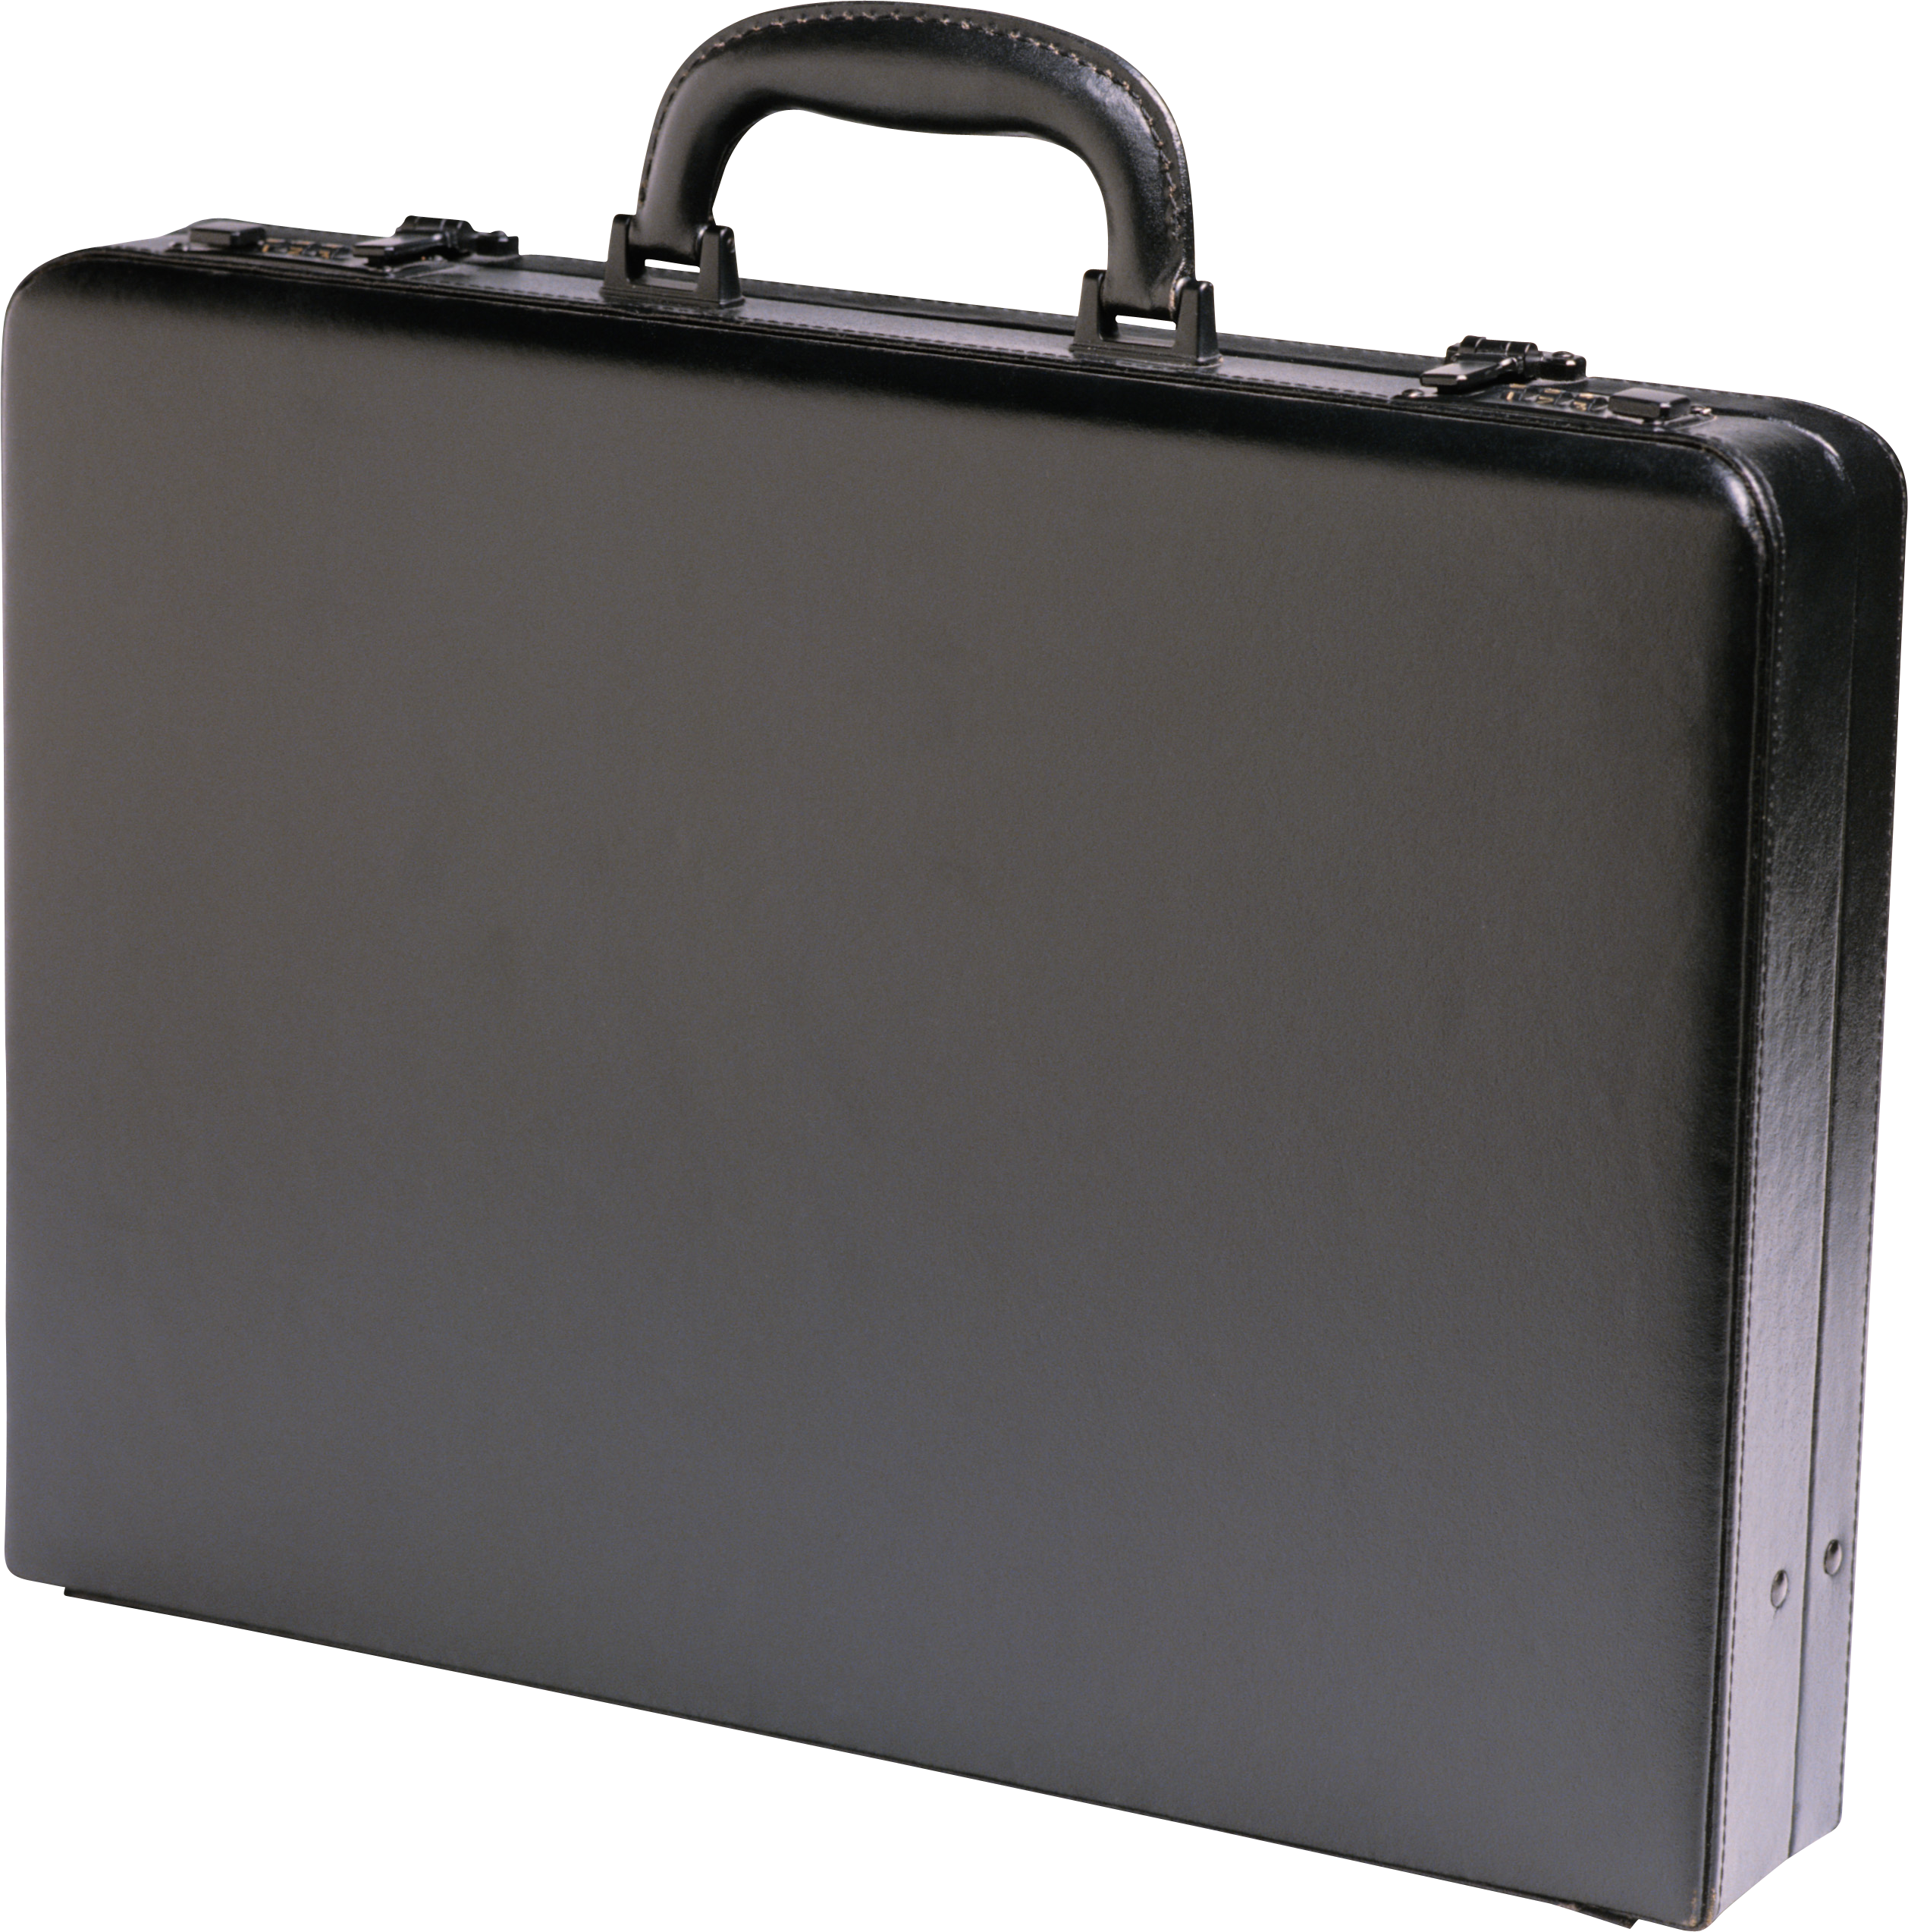 Suitcase PNG image - Suitcase HD PNG